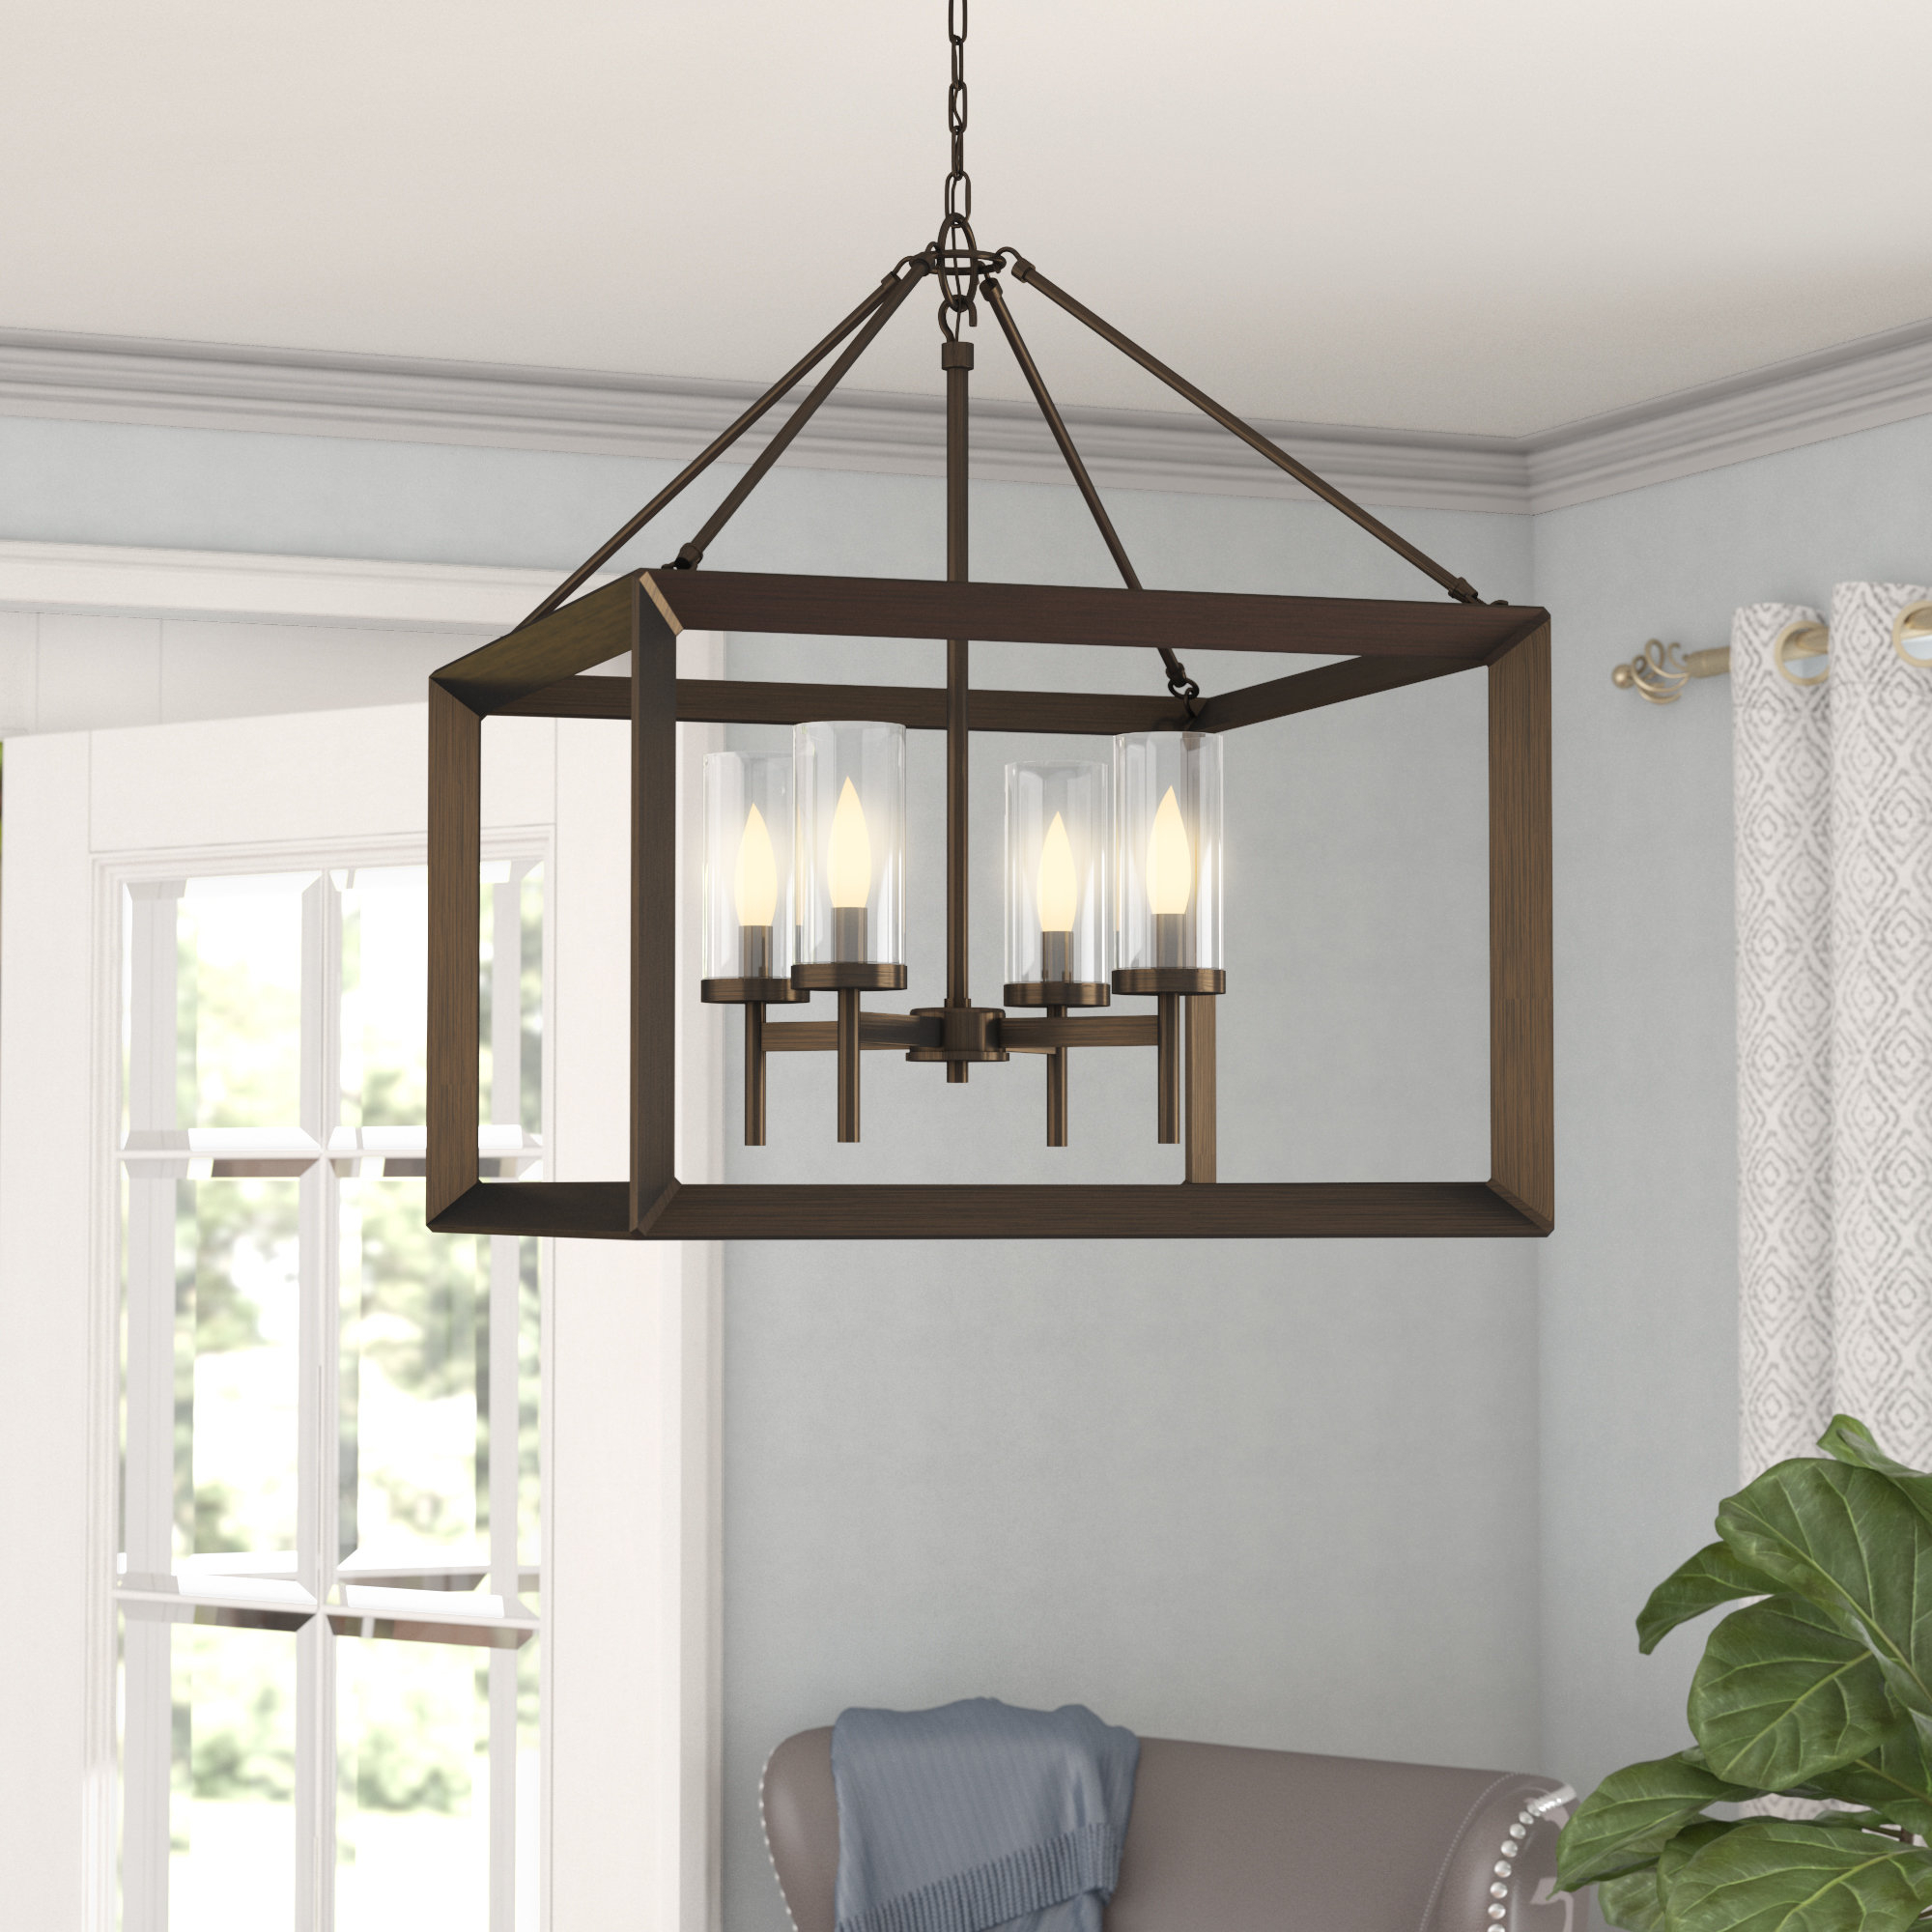 Farmhouse Kitchen Chandelier You'll Love In 2019 | Wayfair Pertaining To Millbrook 5 Light Shaded Chandeliers (View 11 of 30)